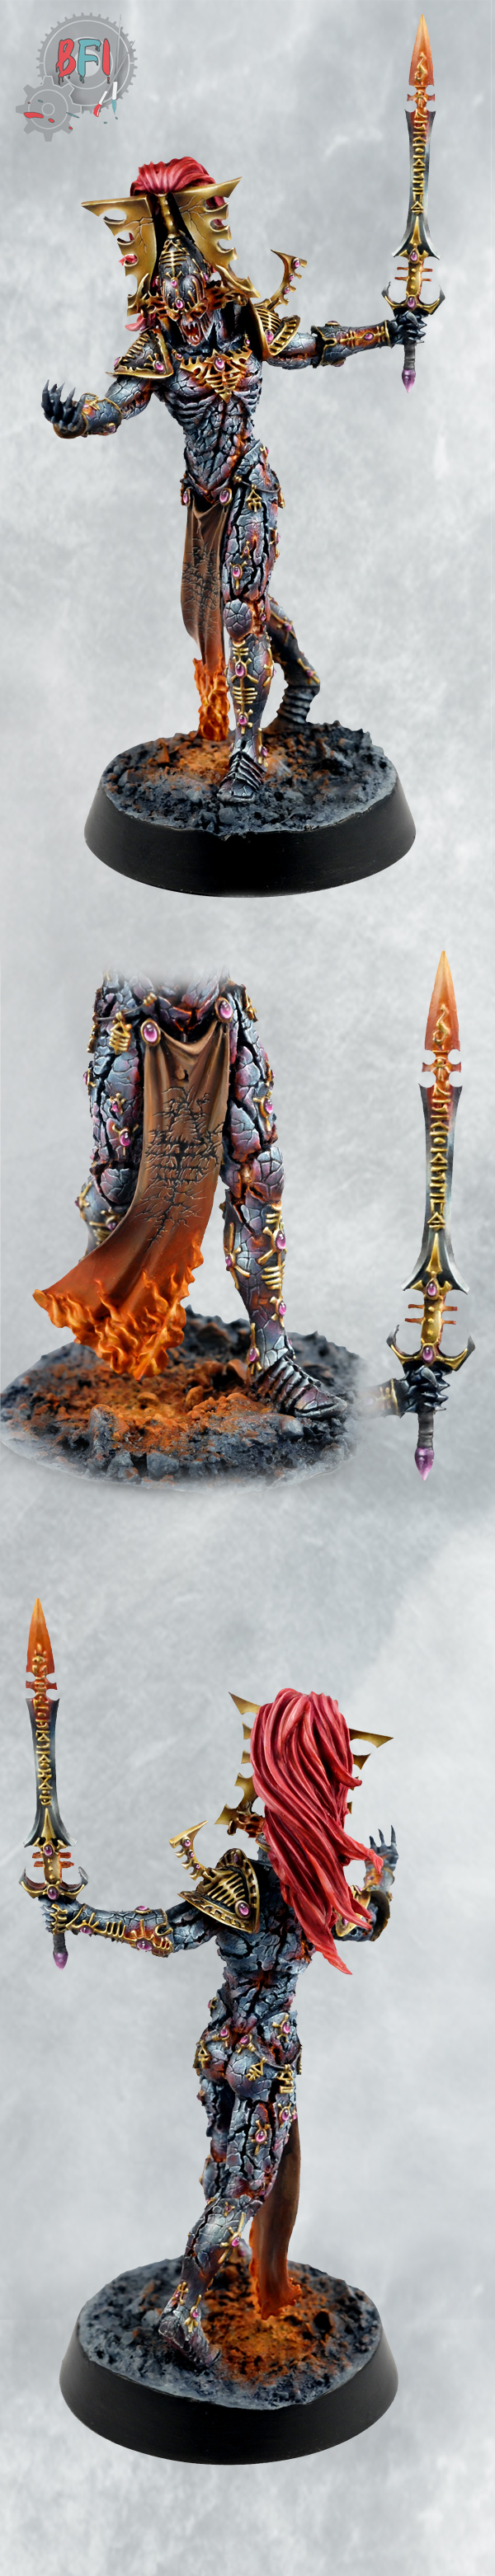 Eldar Avatar from Forge World